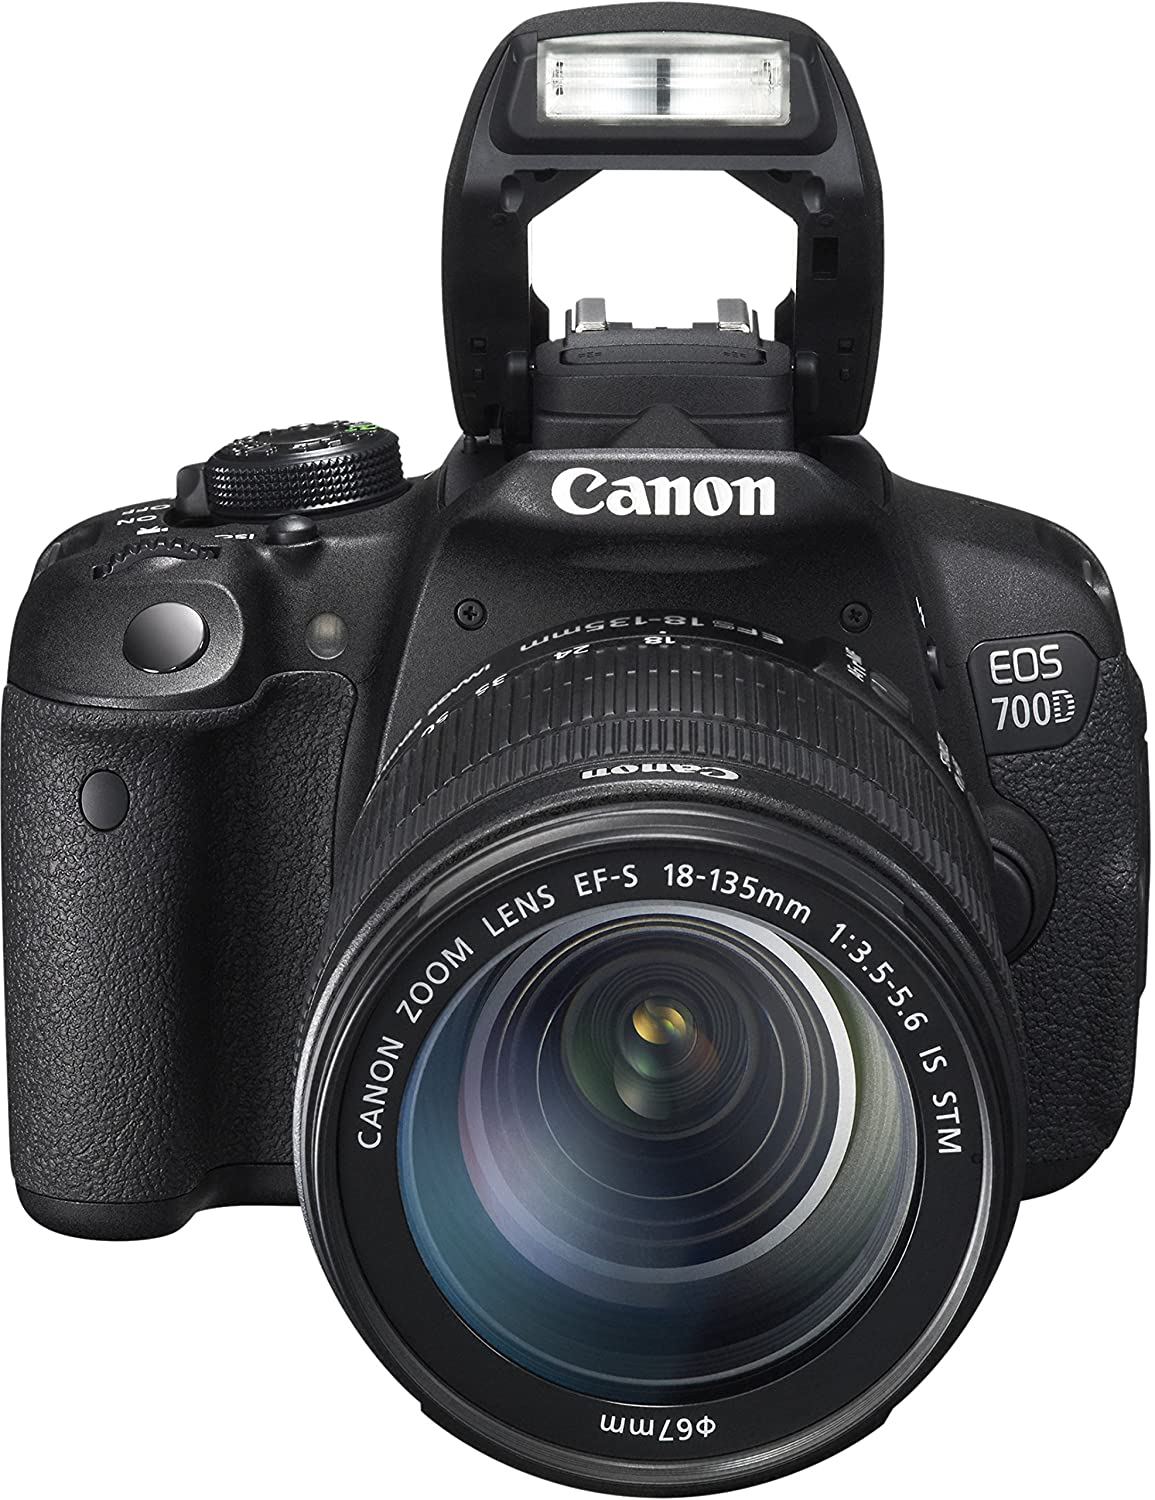 Canon EOS 700D - digital camera EF-S 18-135mm IS STM: Amazon.co.uk ...